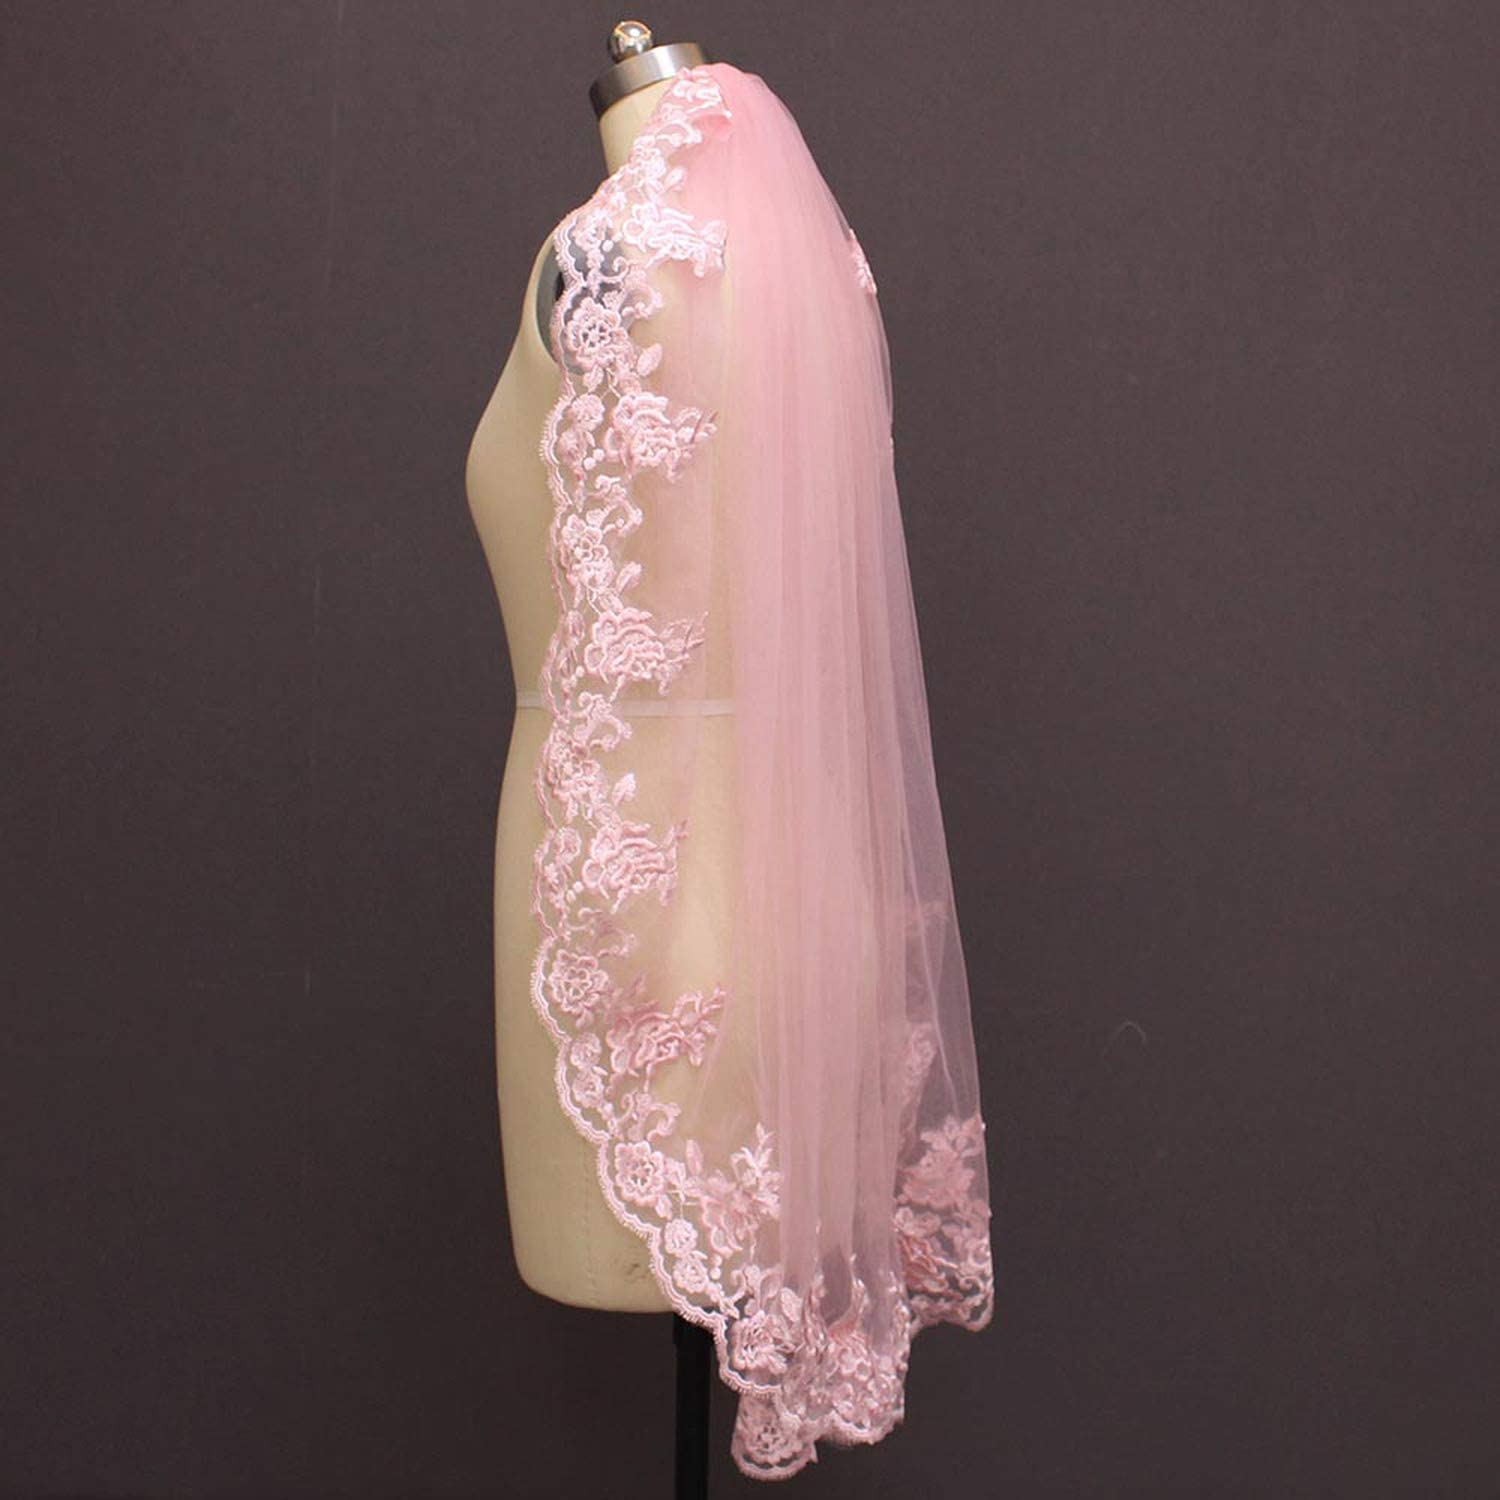 One Layer Pink Lace Short Wedding Veil with Comb Beautiful Bridal Veil Voile De Mariee